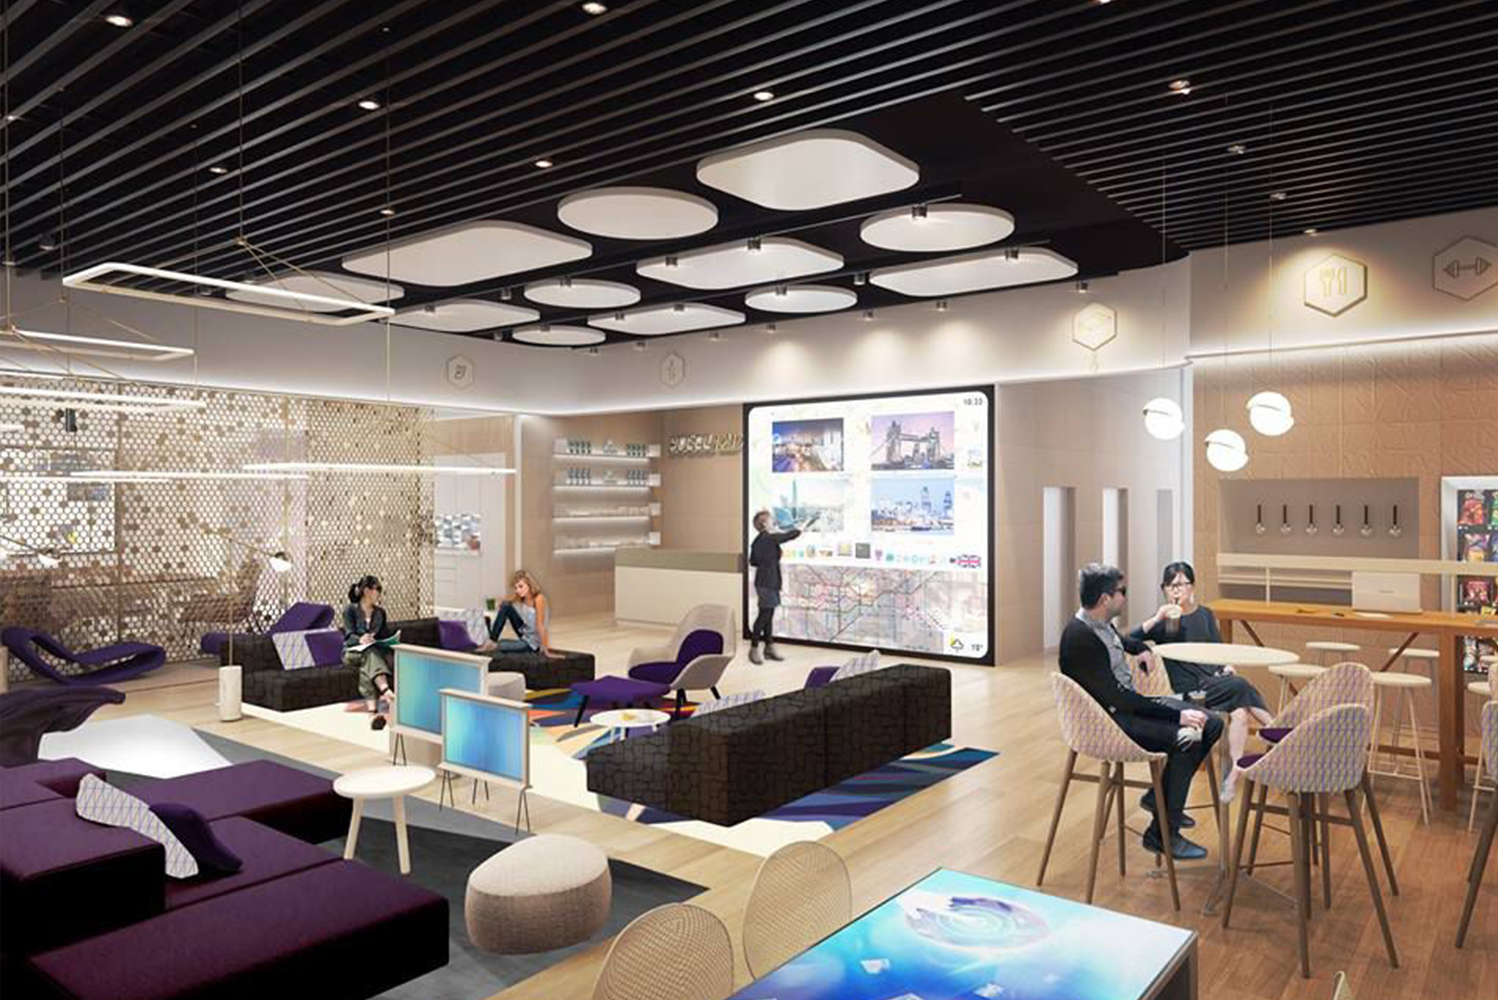 YotelPad Miami and will have 208 residential units in addition to 250 YOTEL cabins.